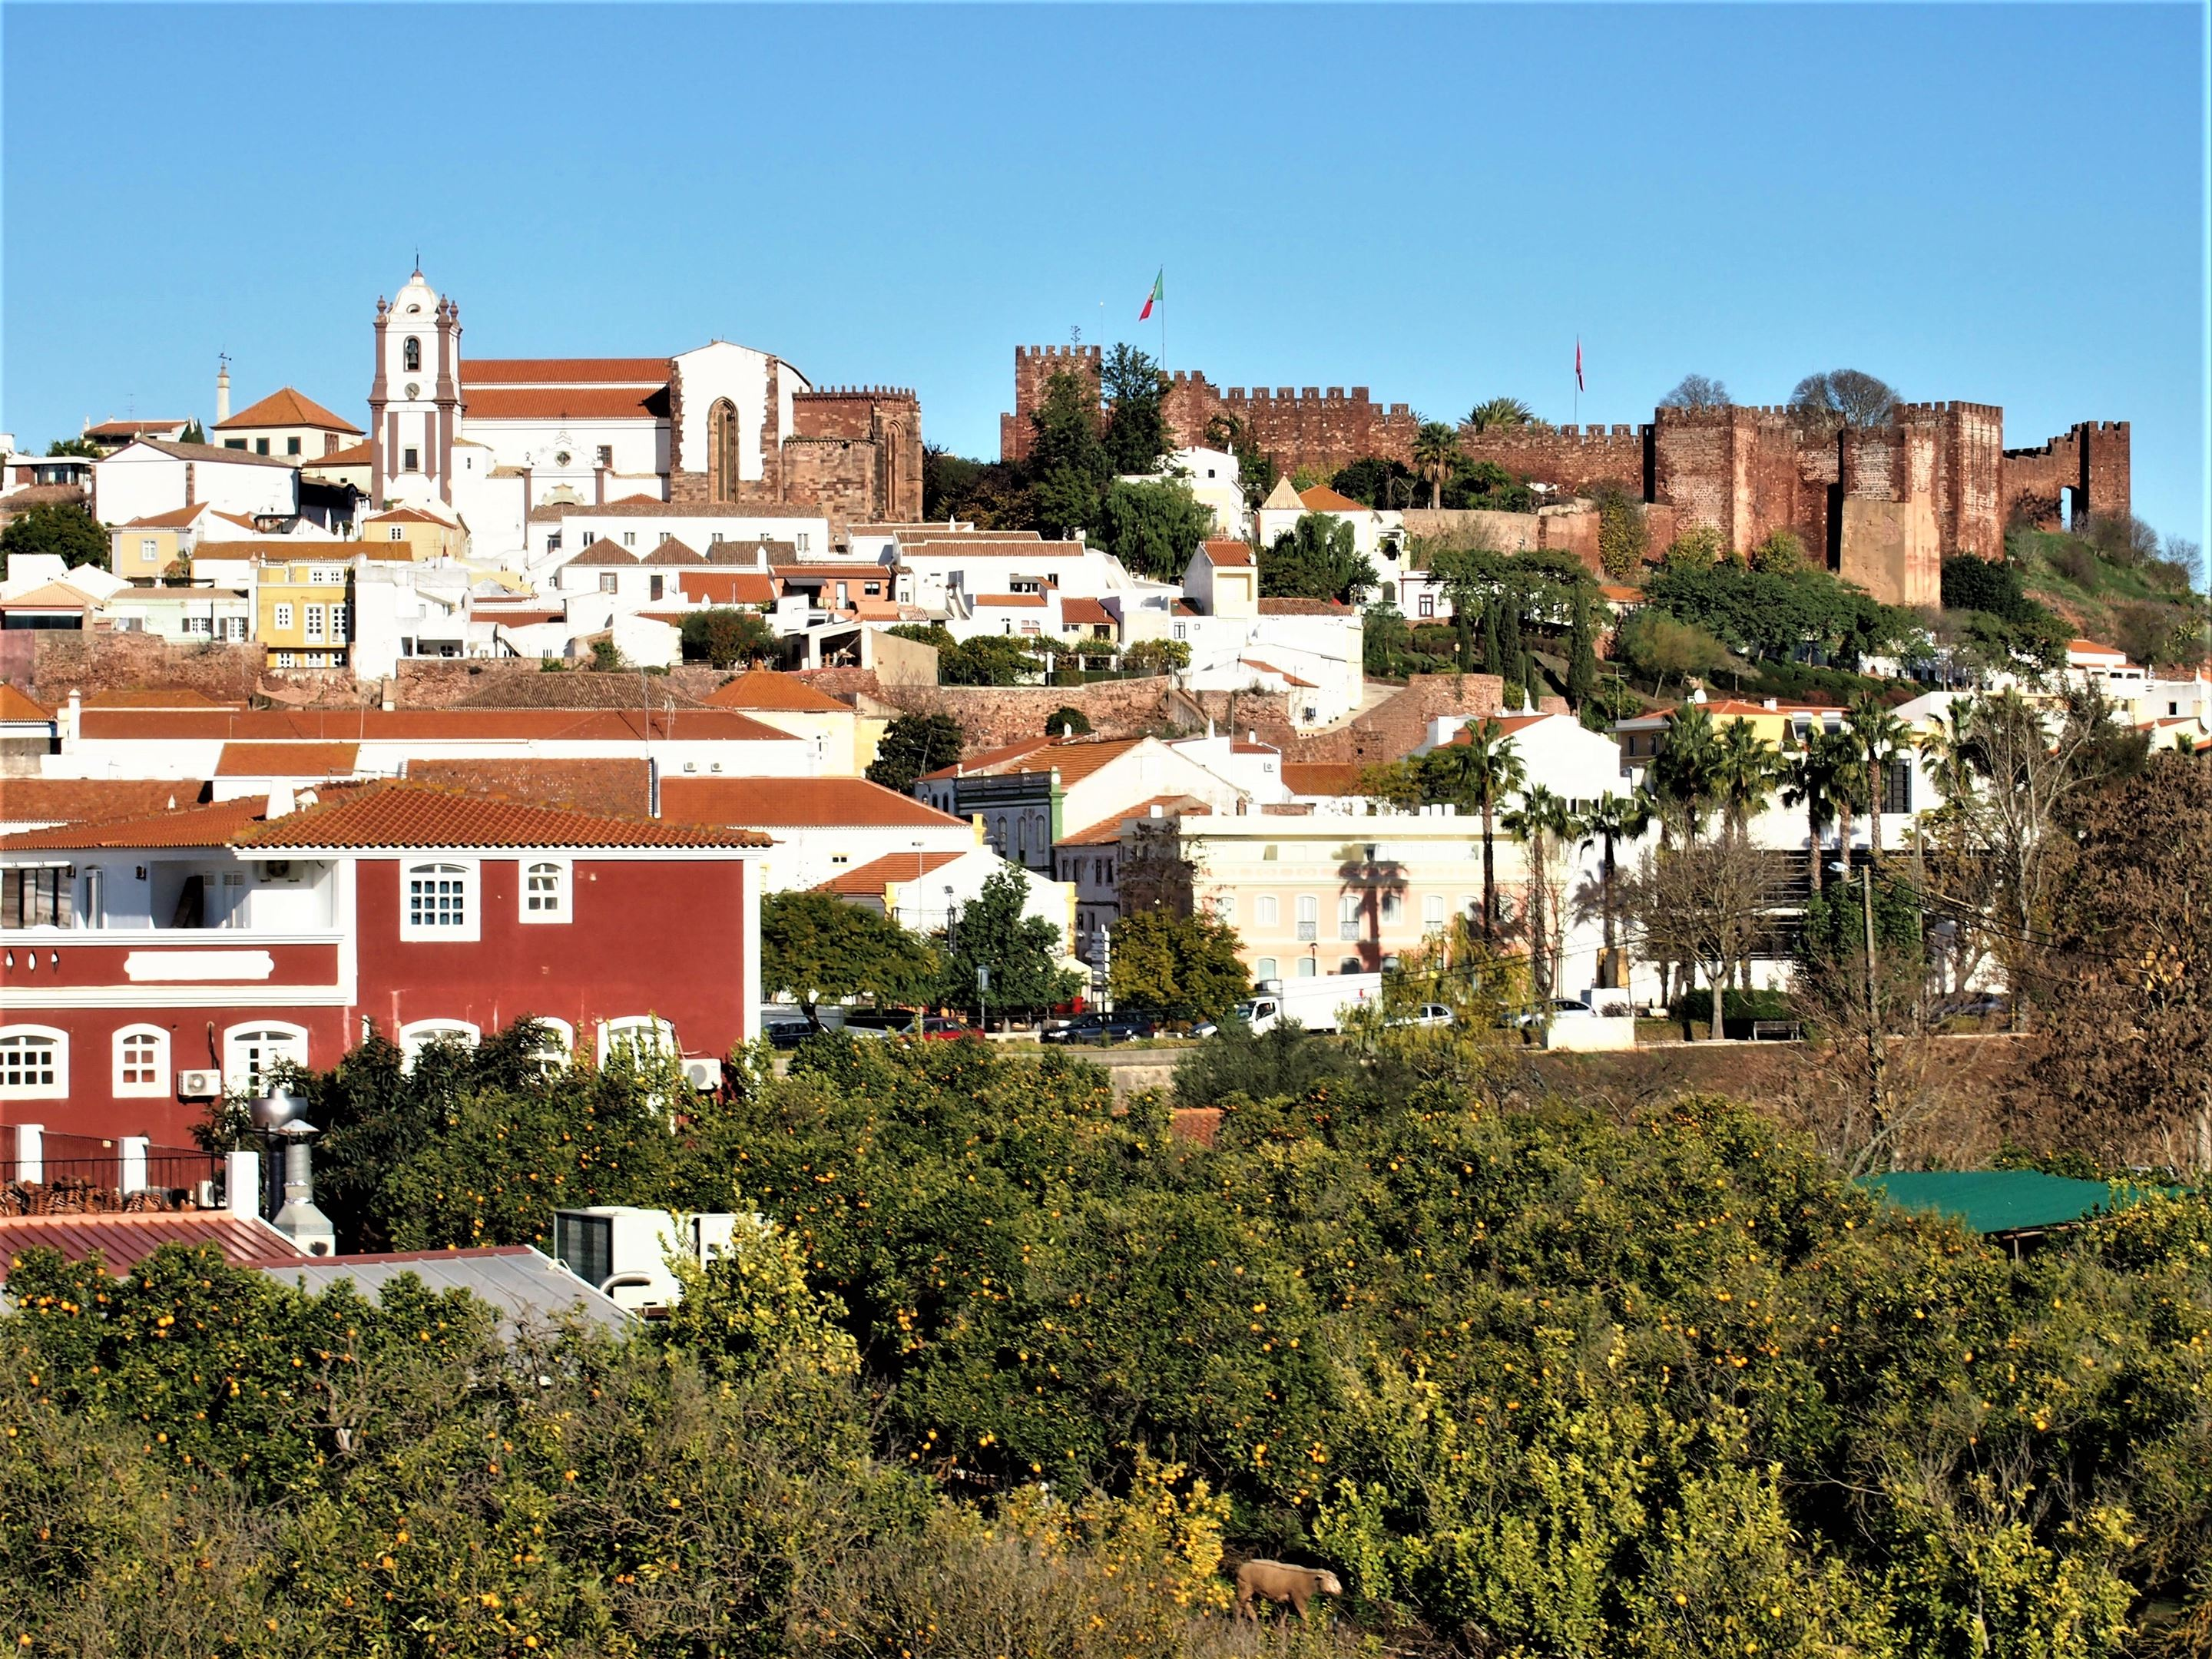 Silves Castle at the top of the hill on the right and Silves Cathedral on the left.